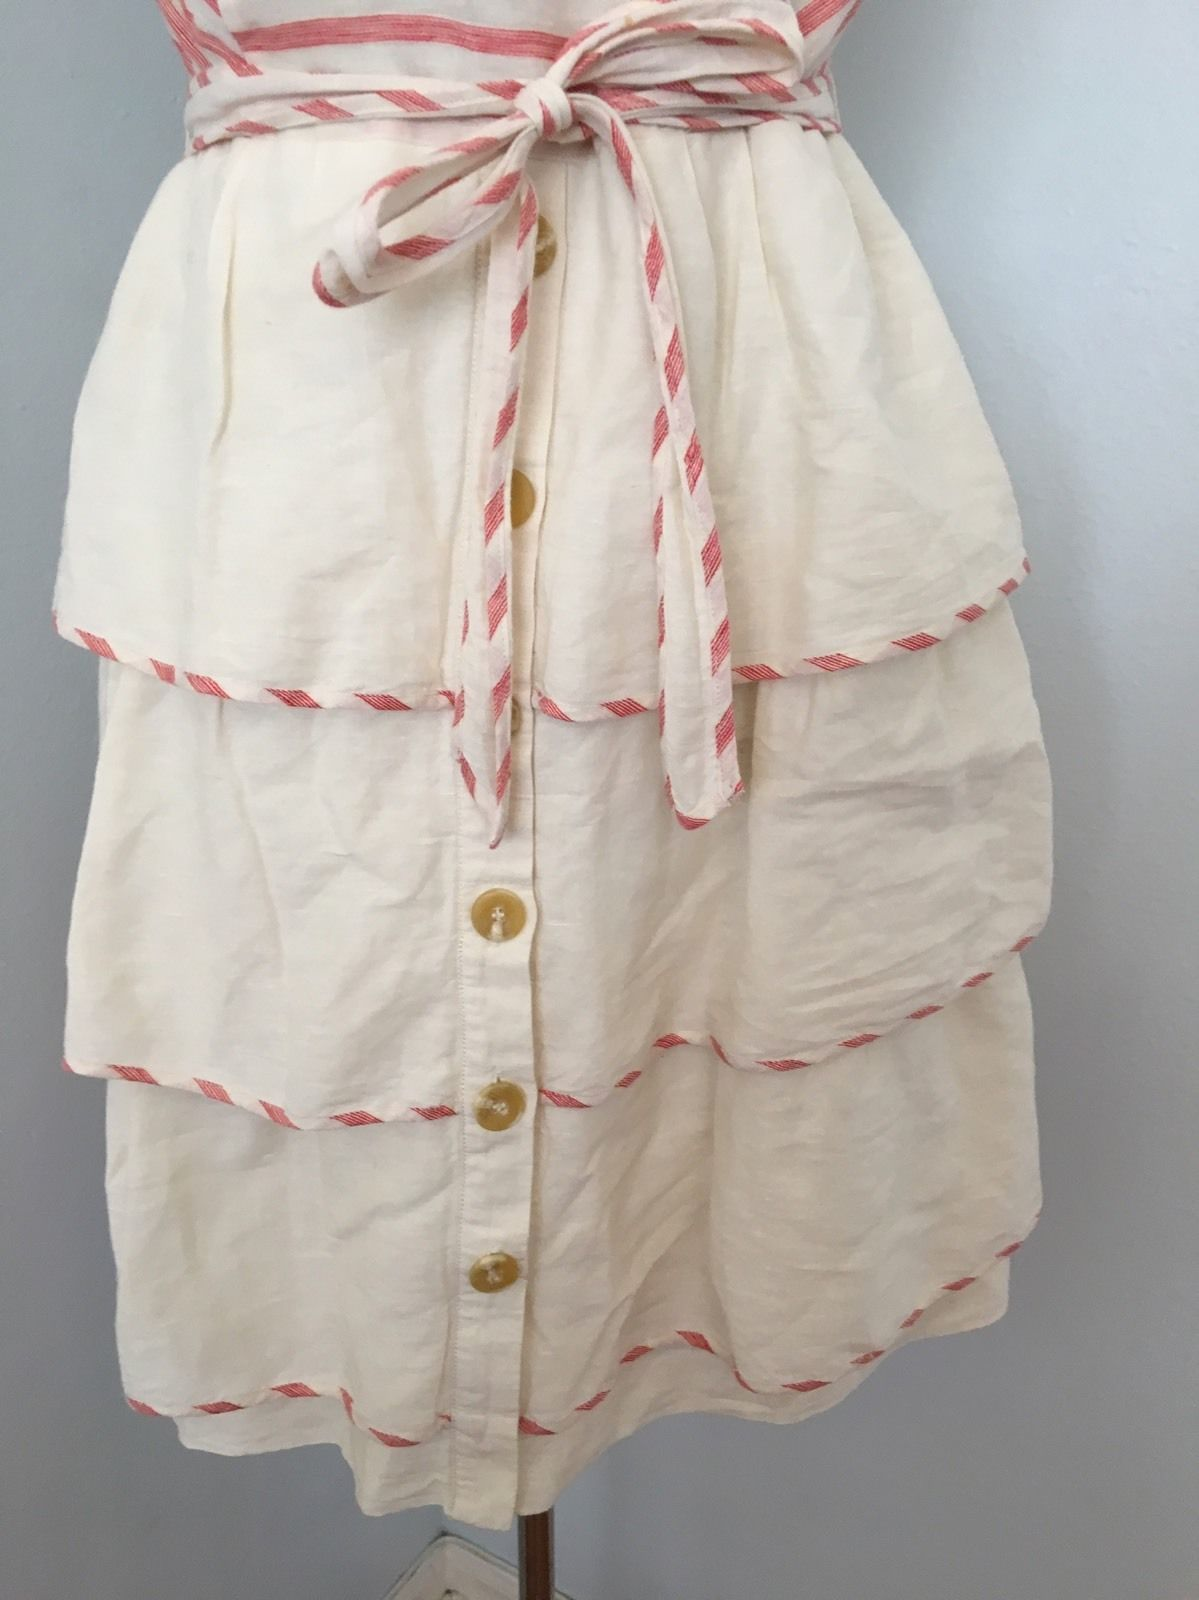 Maeve Anthropologie Sweet Shoppe Dress 12 Ivory Red Striped Tiered Linen Sash